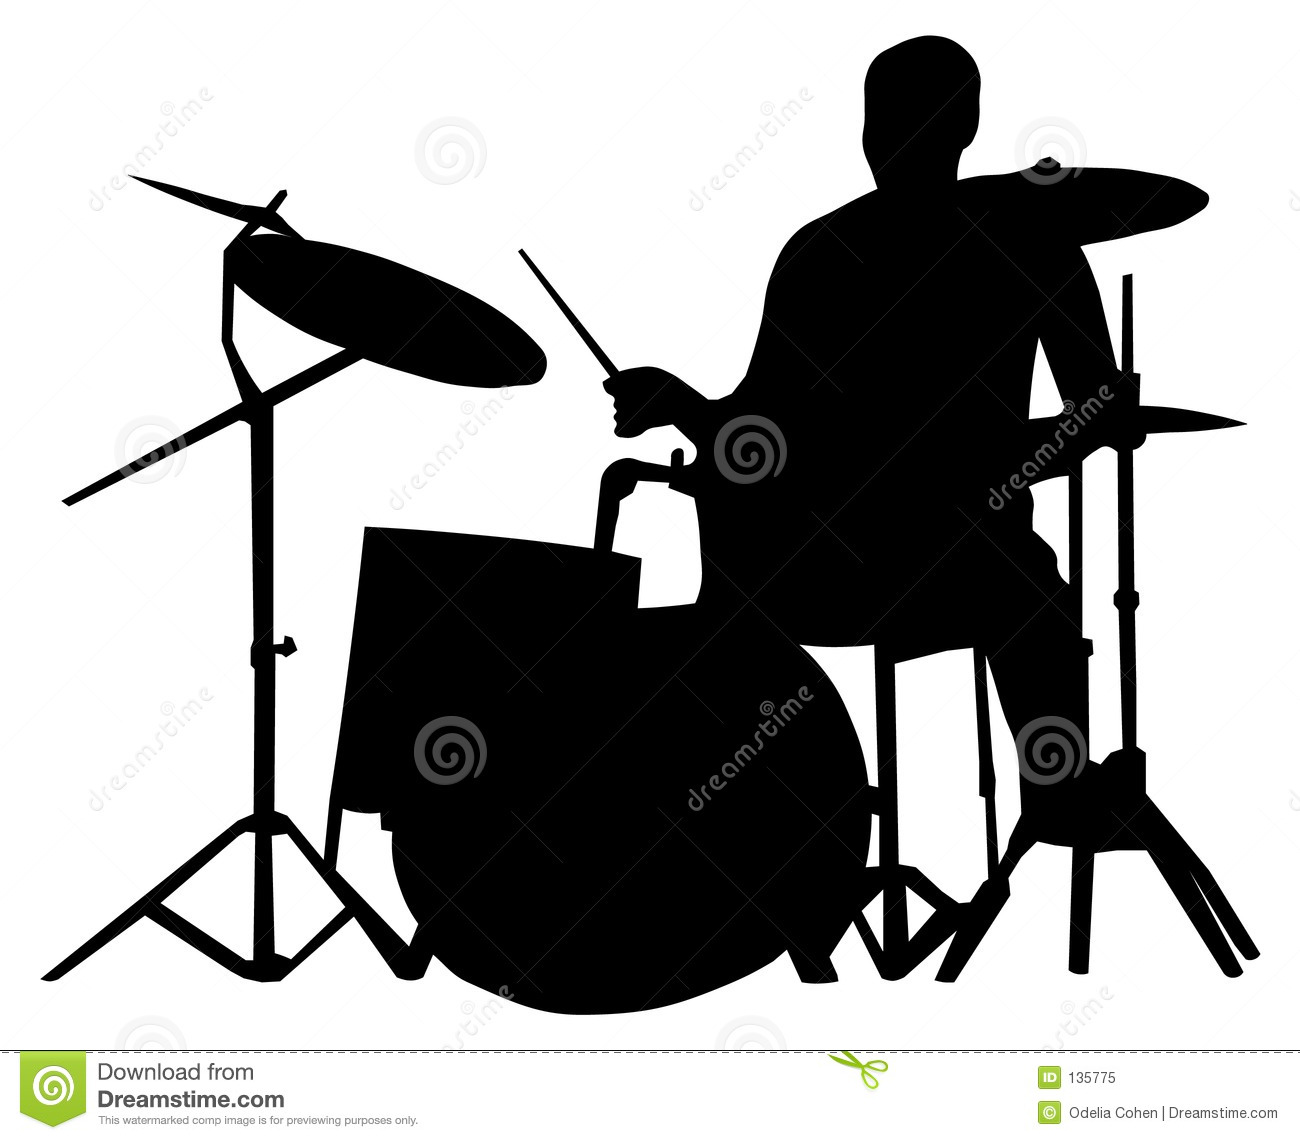 Drummer Silhouette Royalty Free Stock Ph-Drummer silhouette Royalty Free Stock Photo-10